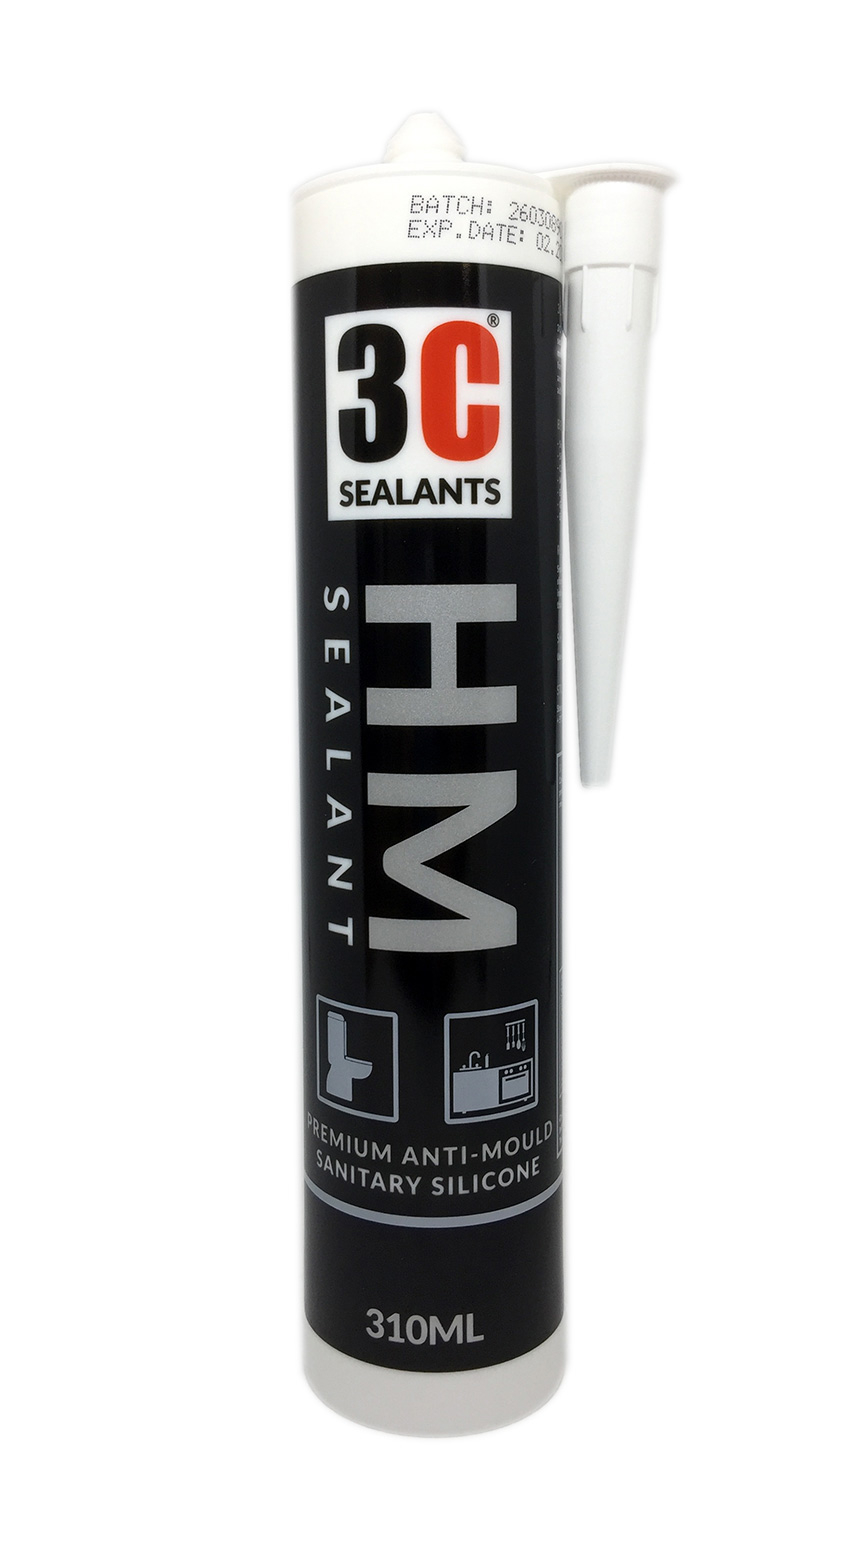 3C Sealants HM Anti-Mould Sanitary Silicone Sealant